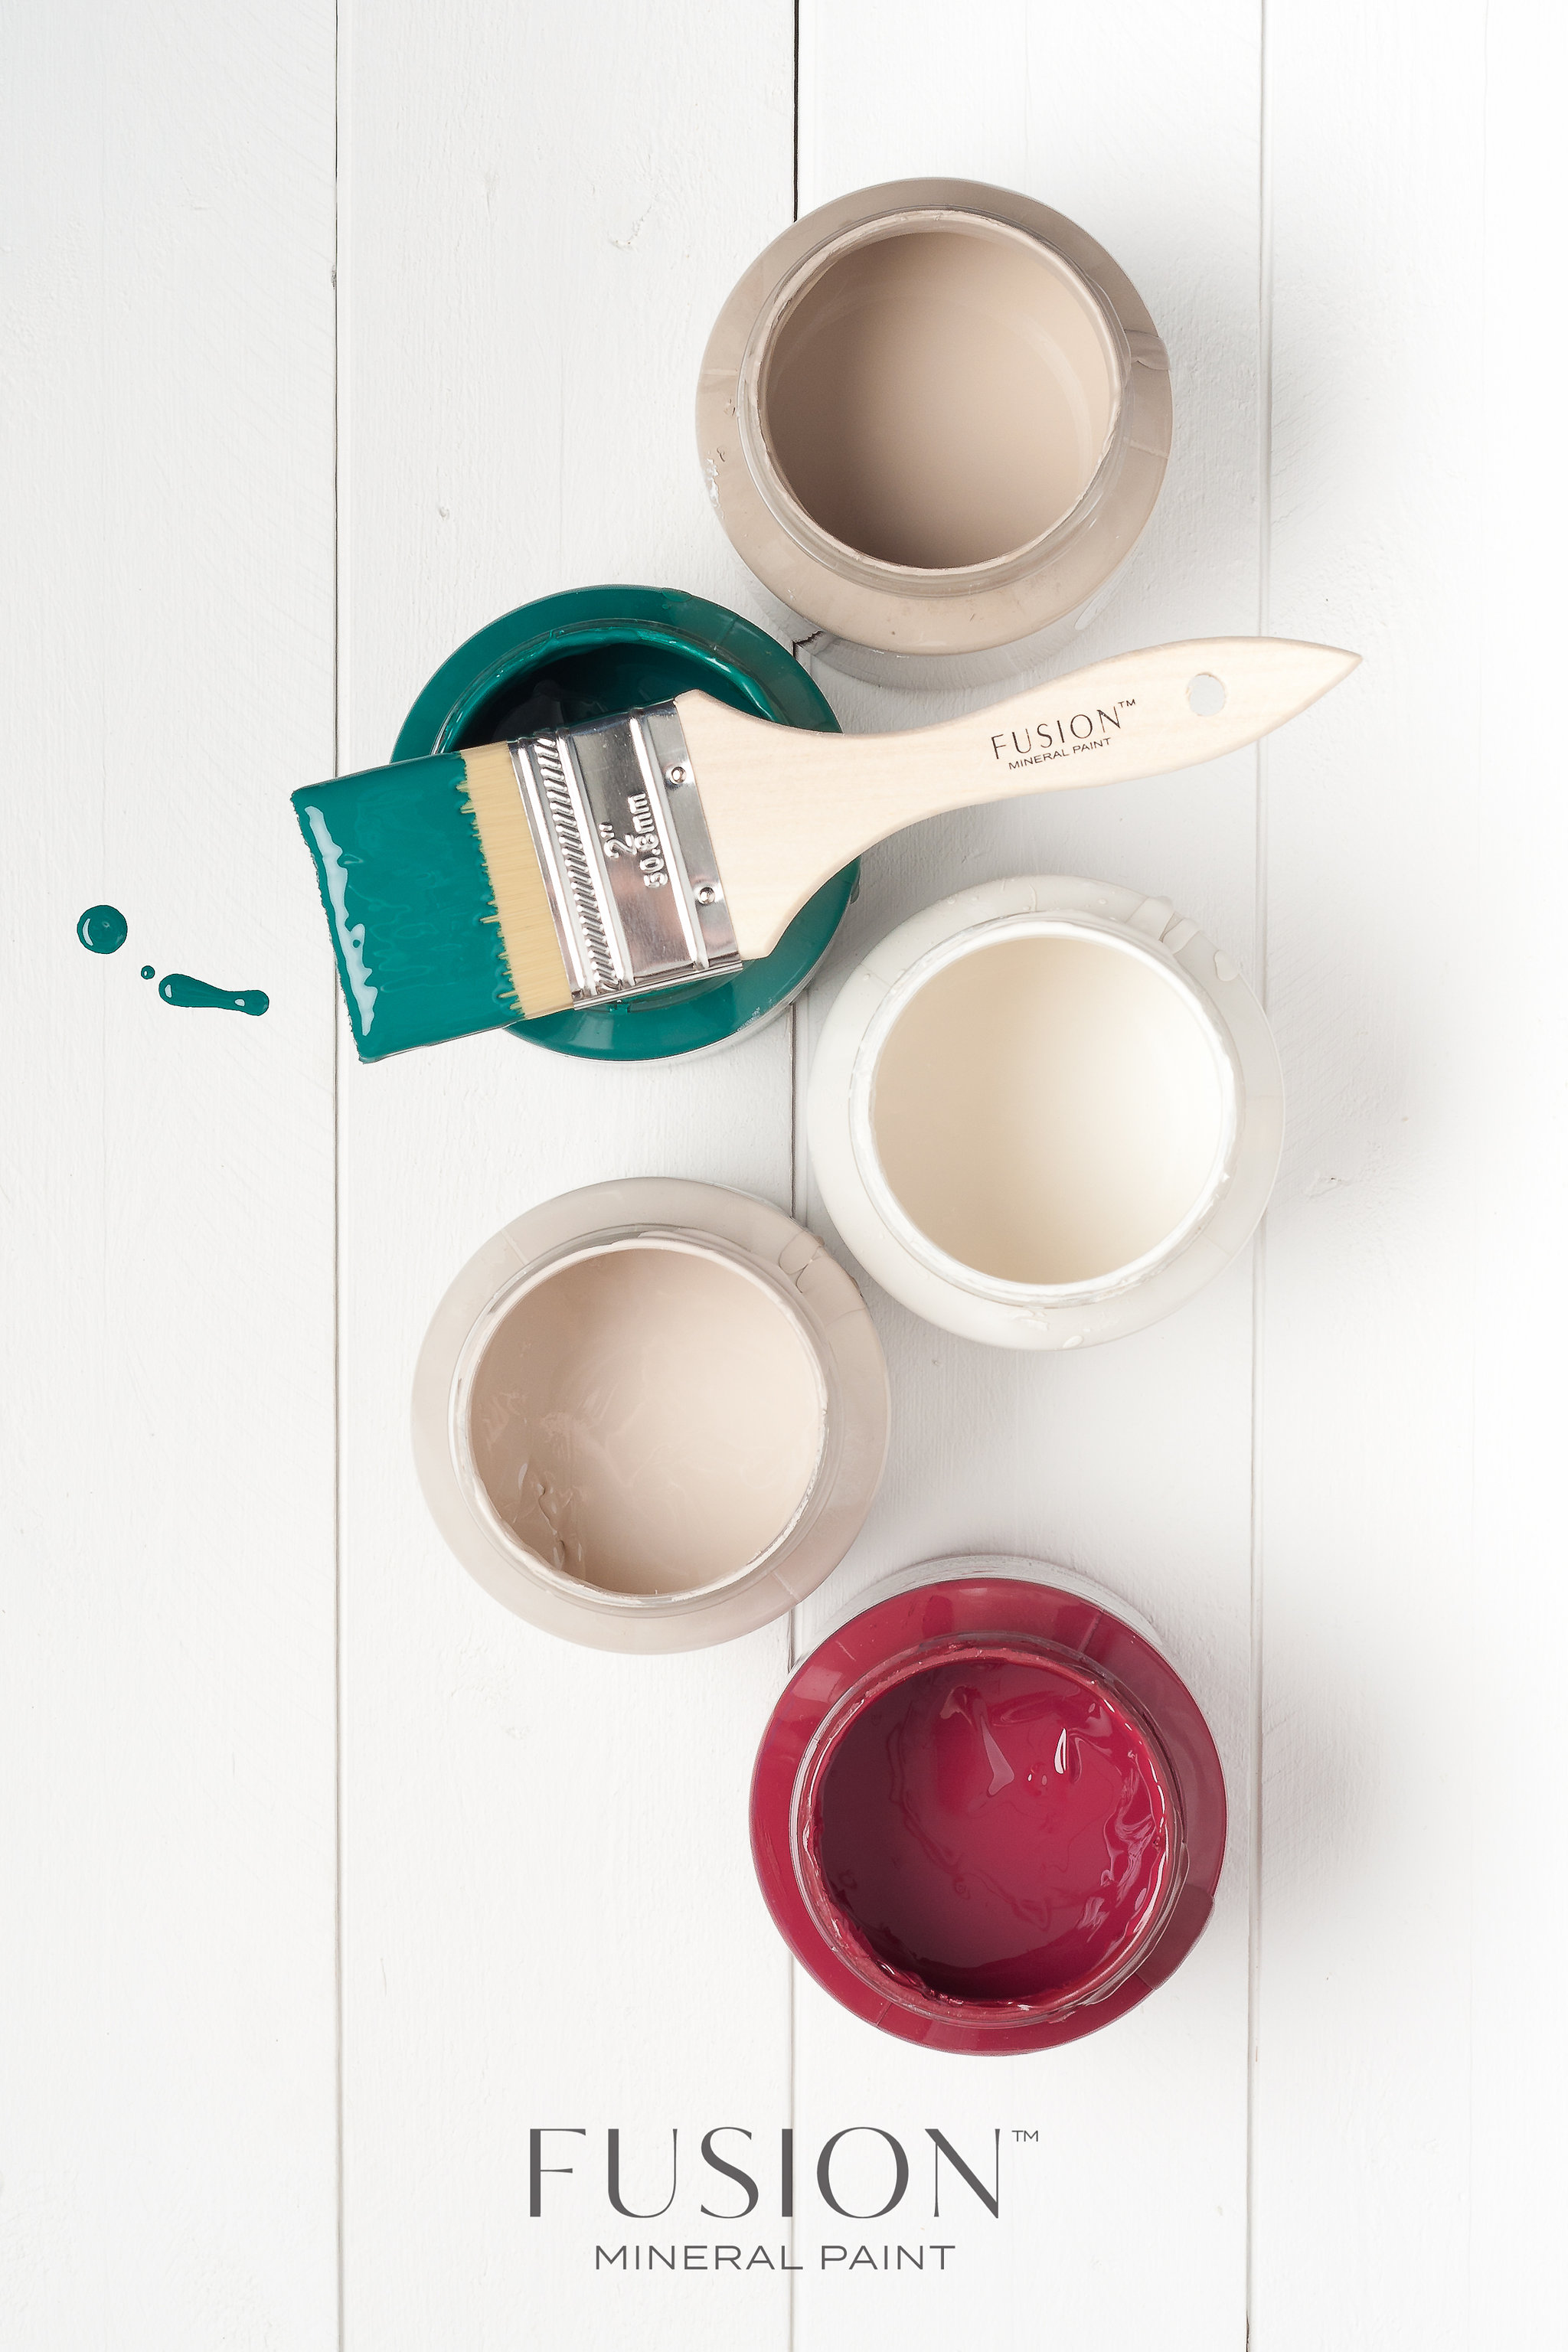 Fusion Mineral Paint. Colours (from the top): Algonquin, Renfrew Blue, Raw Silk, Cathedral Taupe and Cranberry.